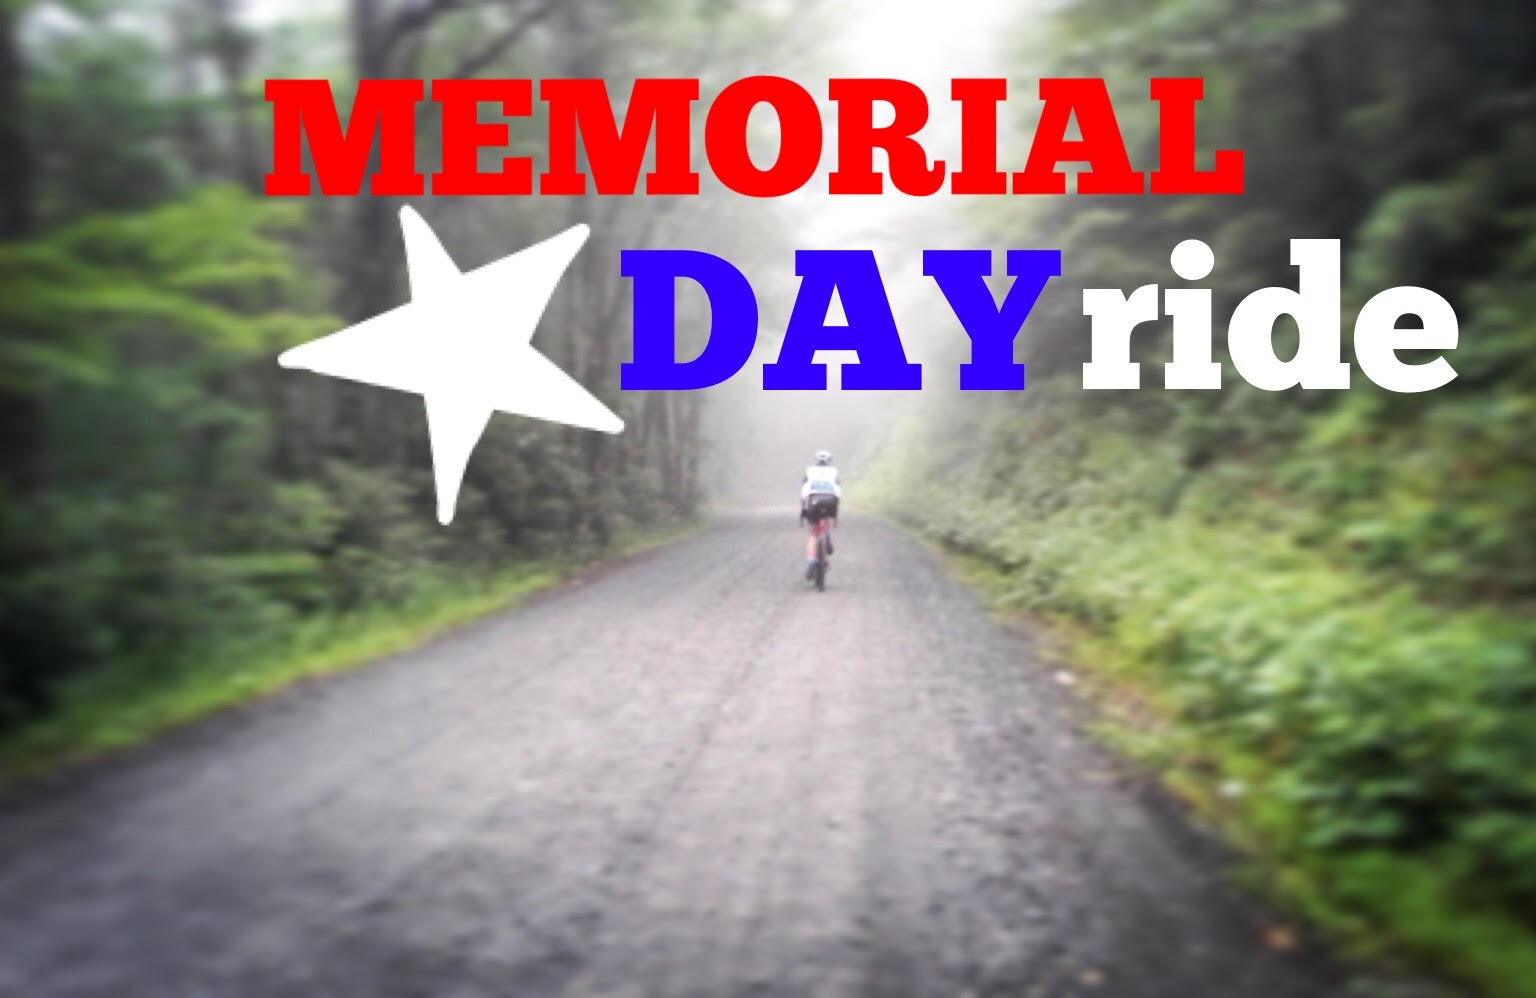 Celebrate Memorial Day & ride with us!!  We will roll at 10am from the parking lot of Globe Baptist Church (at the intersection of Globe Rd. & Anthony Creek Rd).  Ride will be approximately 30 miles with a stop at Coffey's General Store and/or Betsey's Ole Country Store.  All paces are welcome as we will have multiple regroups after climbs and descents. Gravel, Cyclocross, or Mountain Bikes are highly recommended.